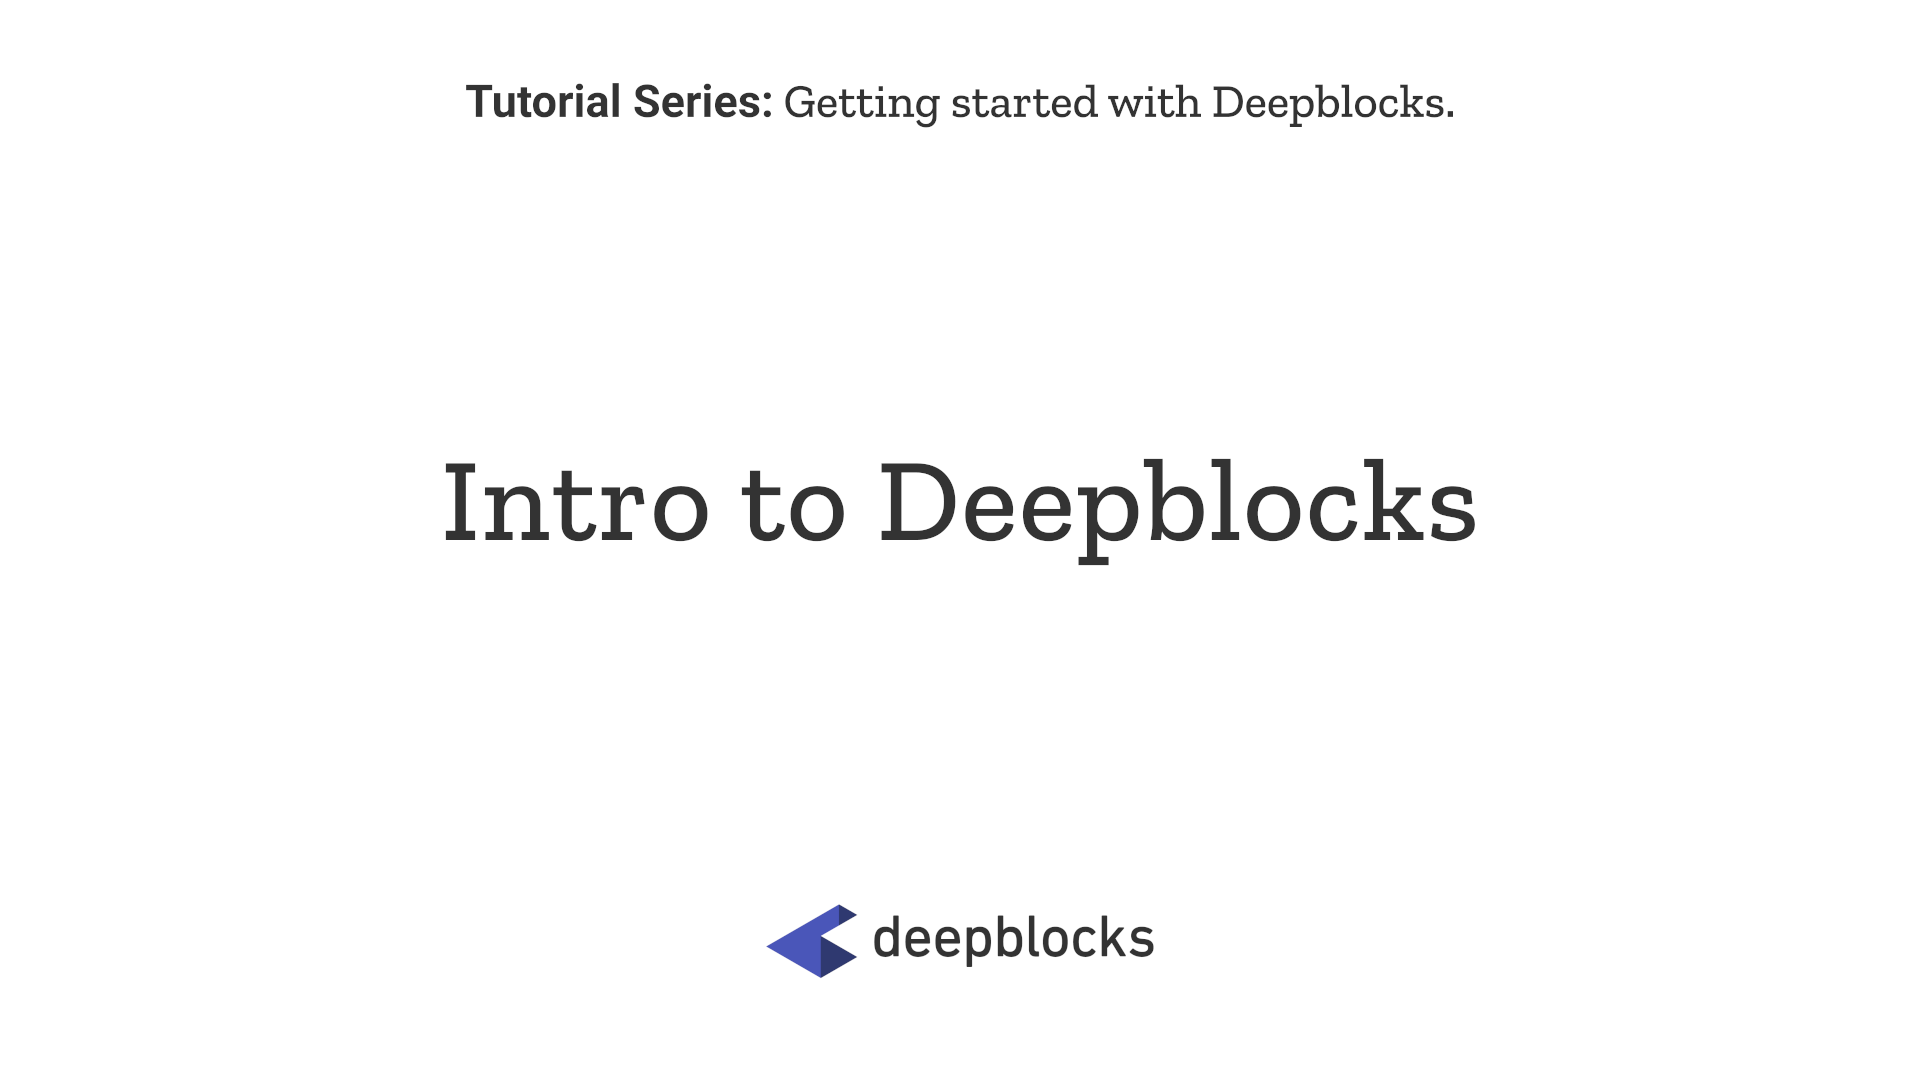 01 Intro to Deepblocks.png